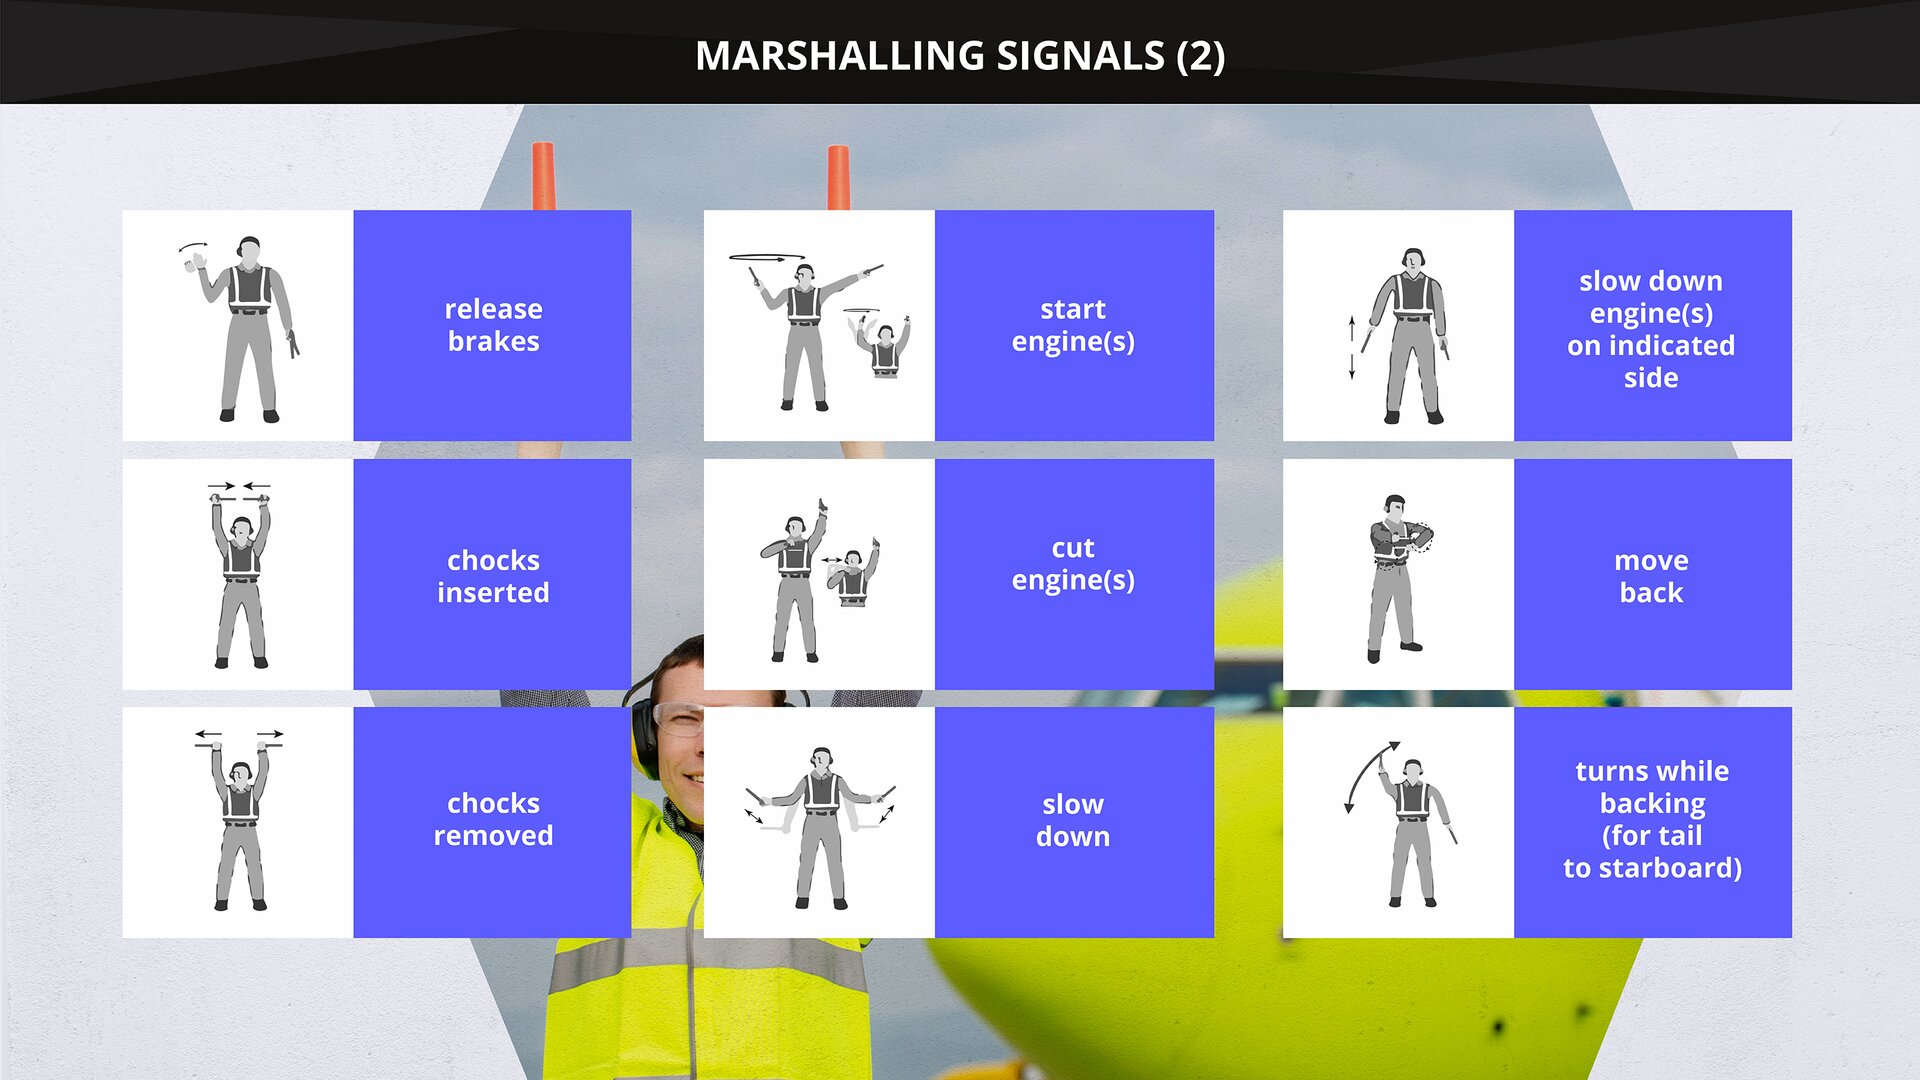 The image presents marshalling signals from a ground controller to an aircraft. Grafika przedstawia sygnały manewrowania od koordynatora ruchu naziemnego do statku powietrznego.